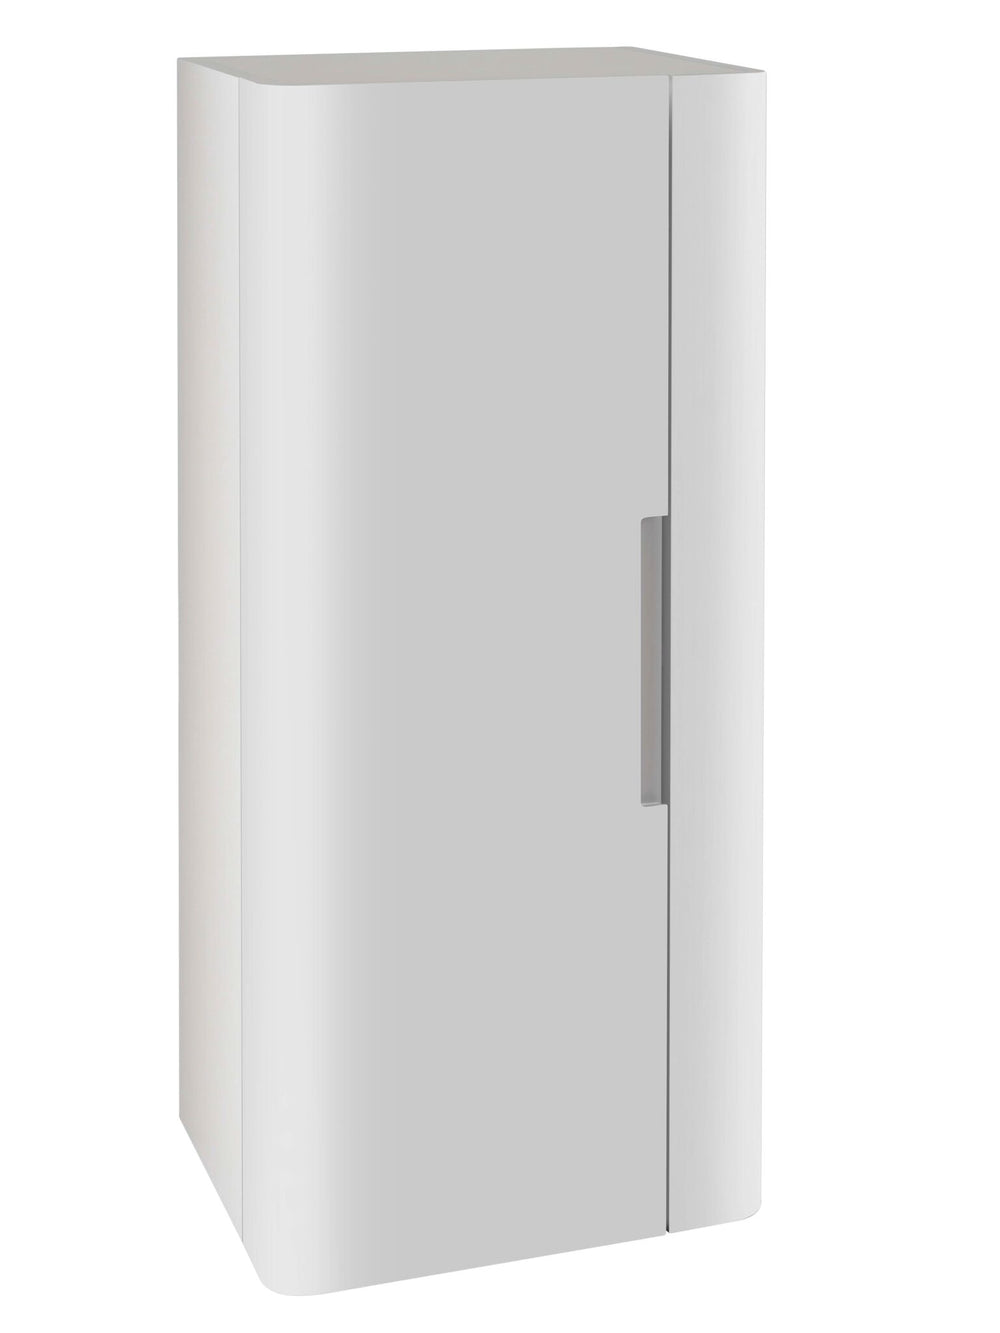 Cara 450 WH Cabinet WHITE